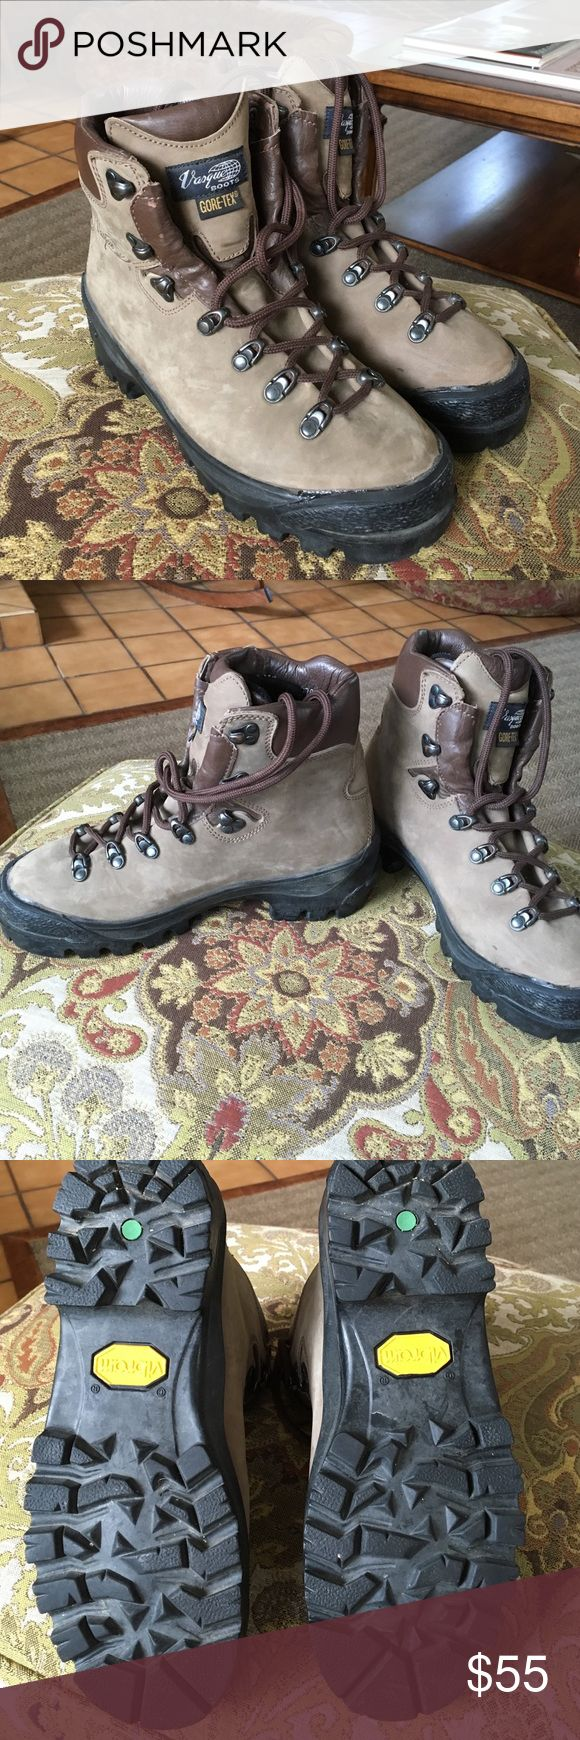 Vasque trail hiking boots with Gore-Tex Mint condition. Stone color leather. Only two hikes on these treads! Ladies hiking boot. Fully lined Gore-Tex. 100% Waterproof. Vibrant soles. Laces are also like new. Vasque Shoes